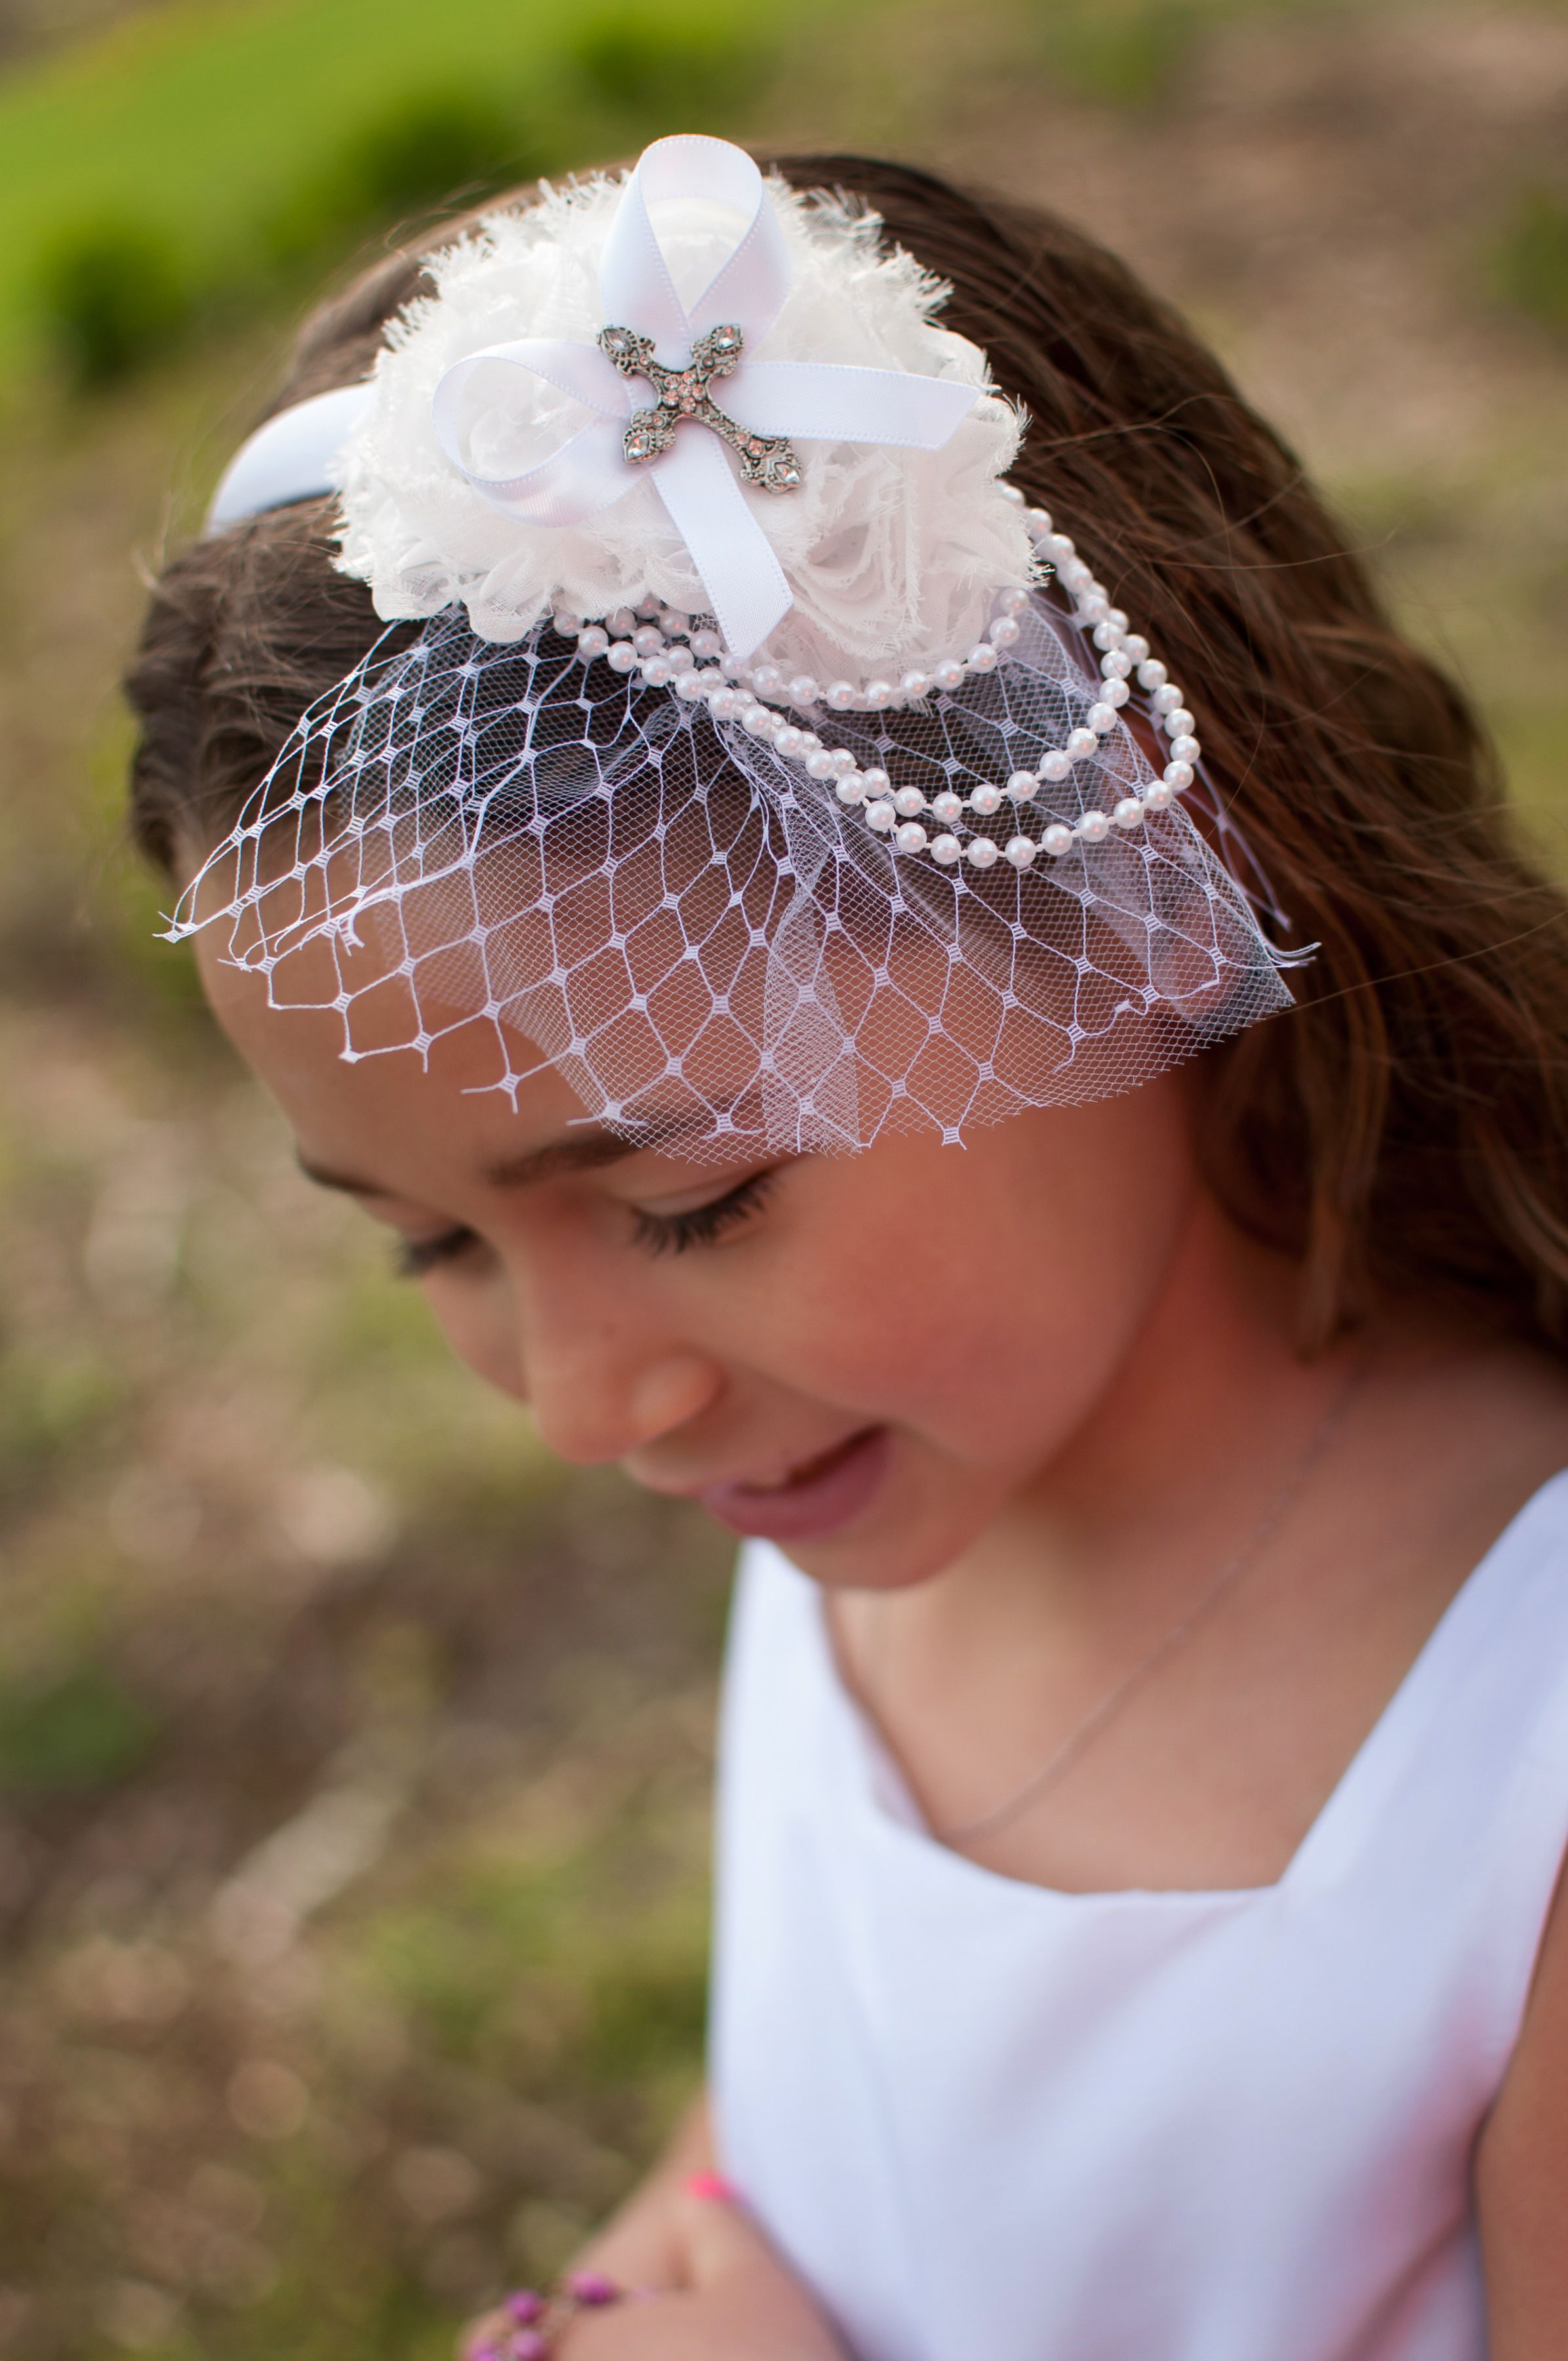 30 Beautiful First Home Decorating Ideas On A Budget: Beautiful First Holy Communion Headband By MiniME Www